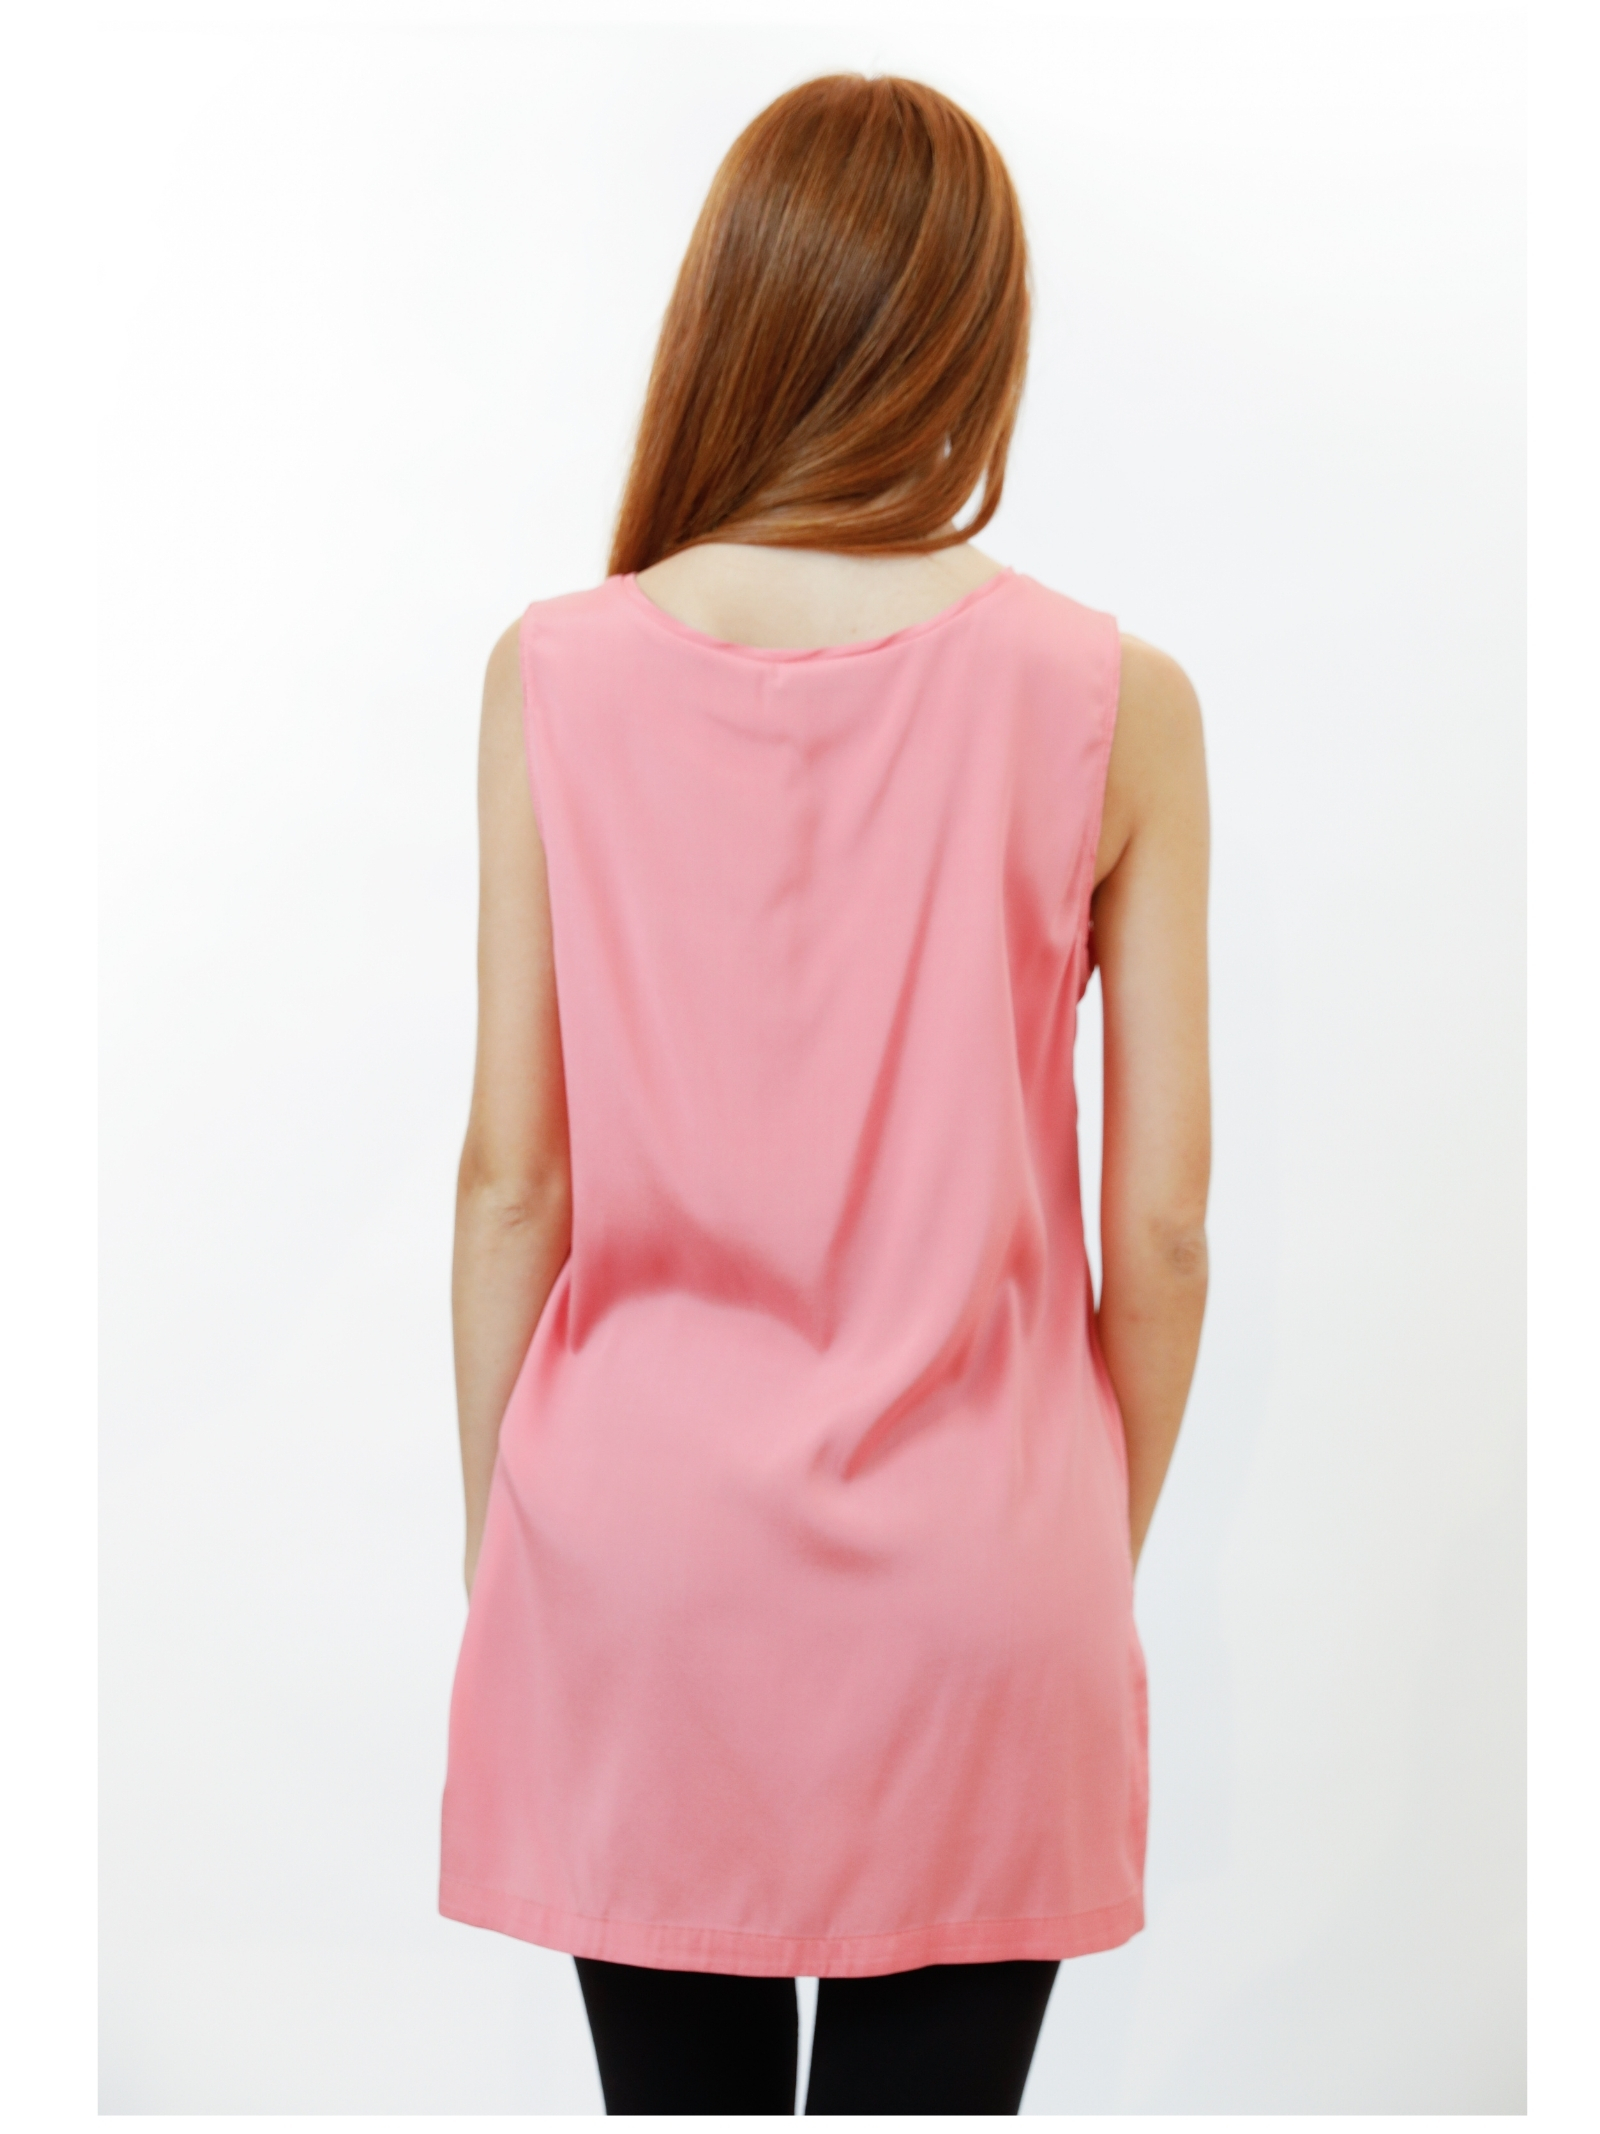 Women's Clothing Silk Satin Top in Pink Pure Silk Maliparmi   Shirts and tops   JP50793102031024